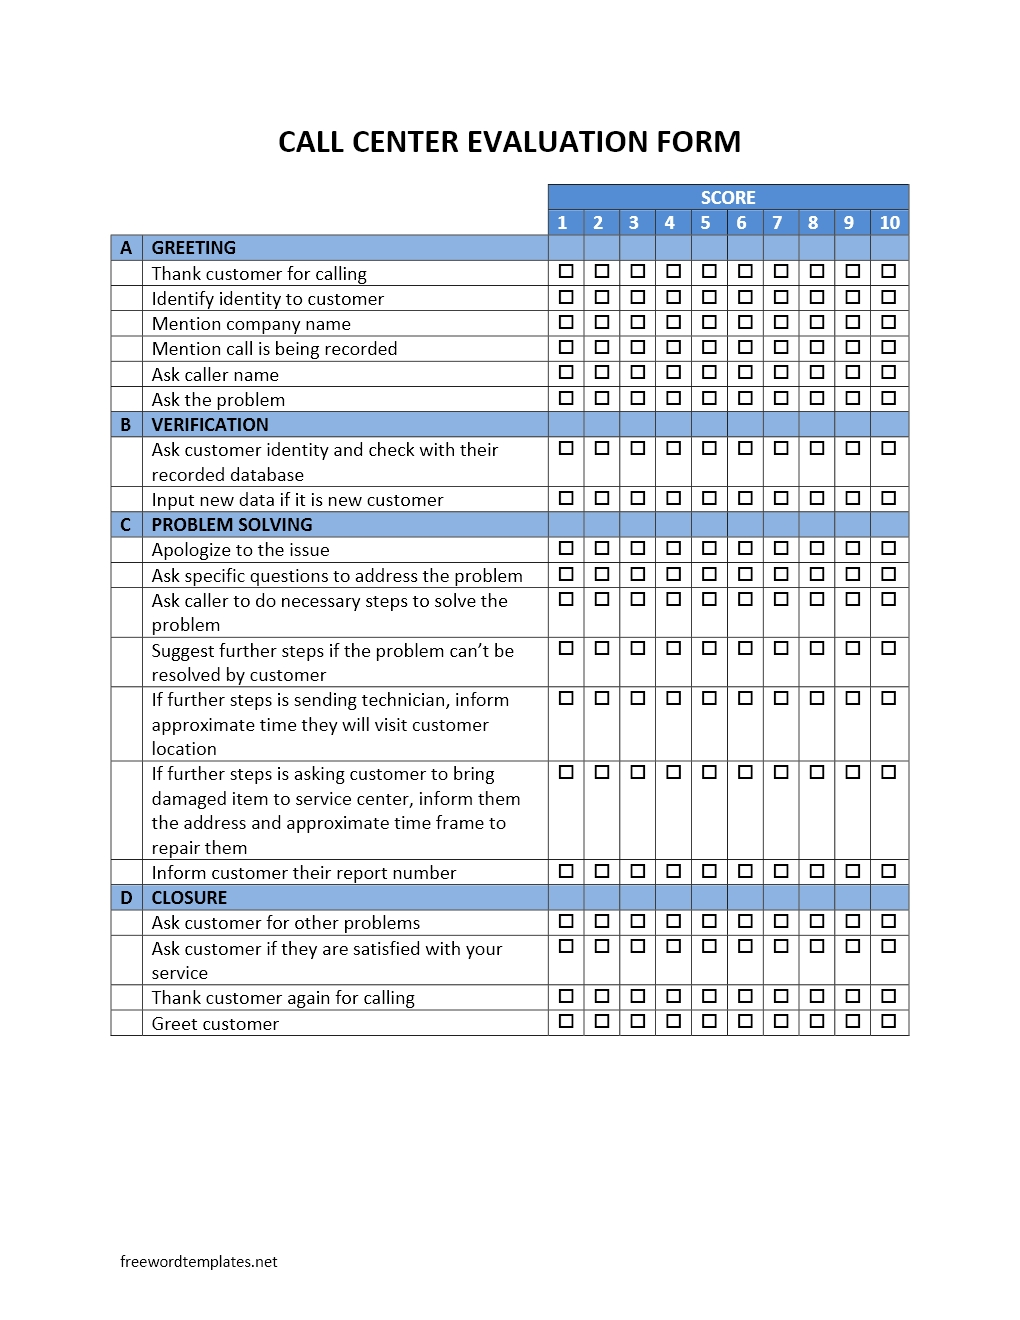 Call Center Evaluation Form Template  Feedback Form Template Free